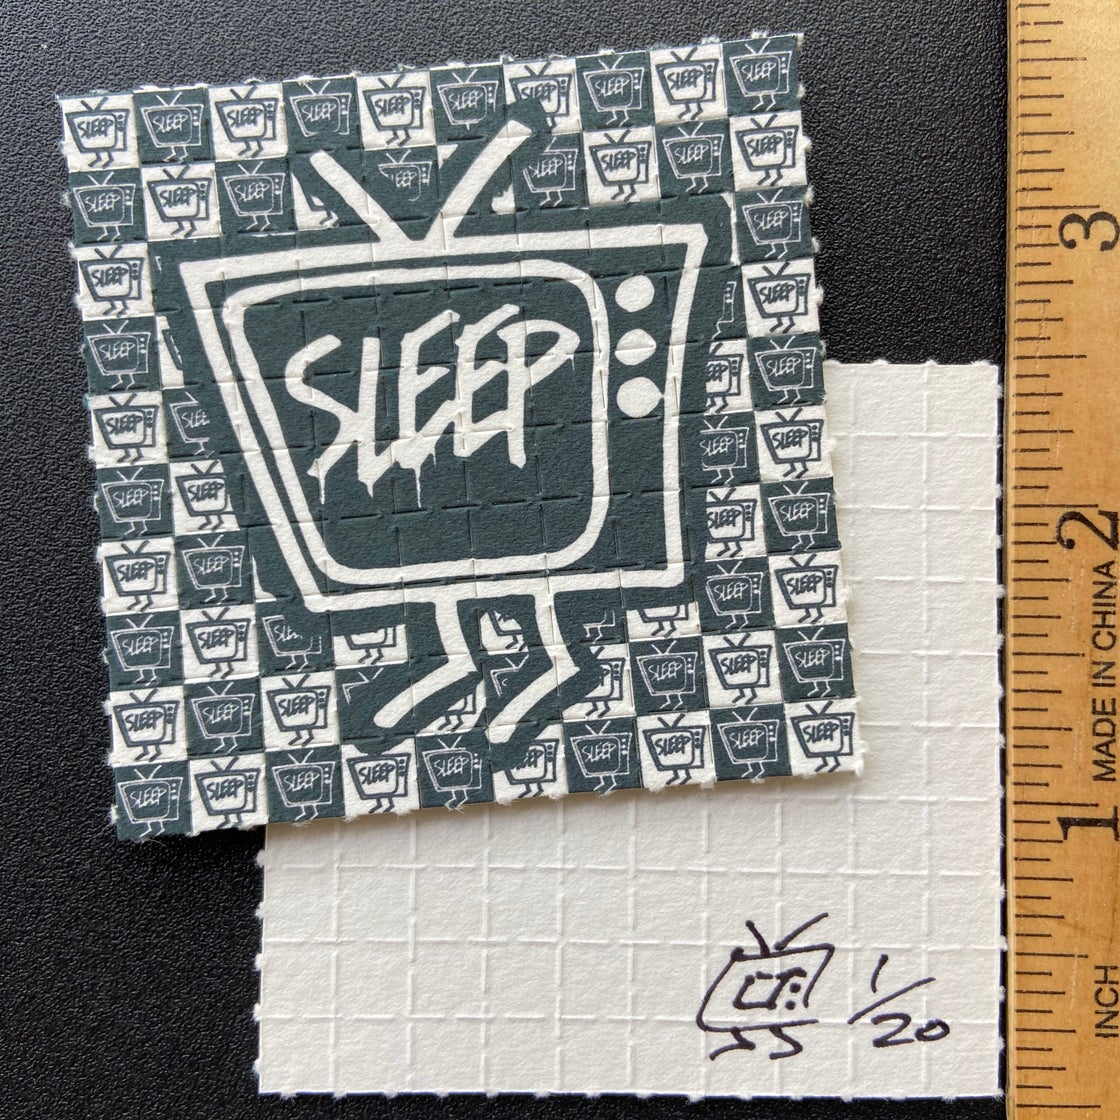 Image of LSD perforated blotter sheet (100 tabs)